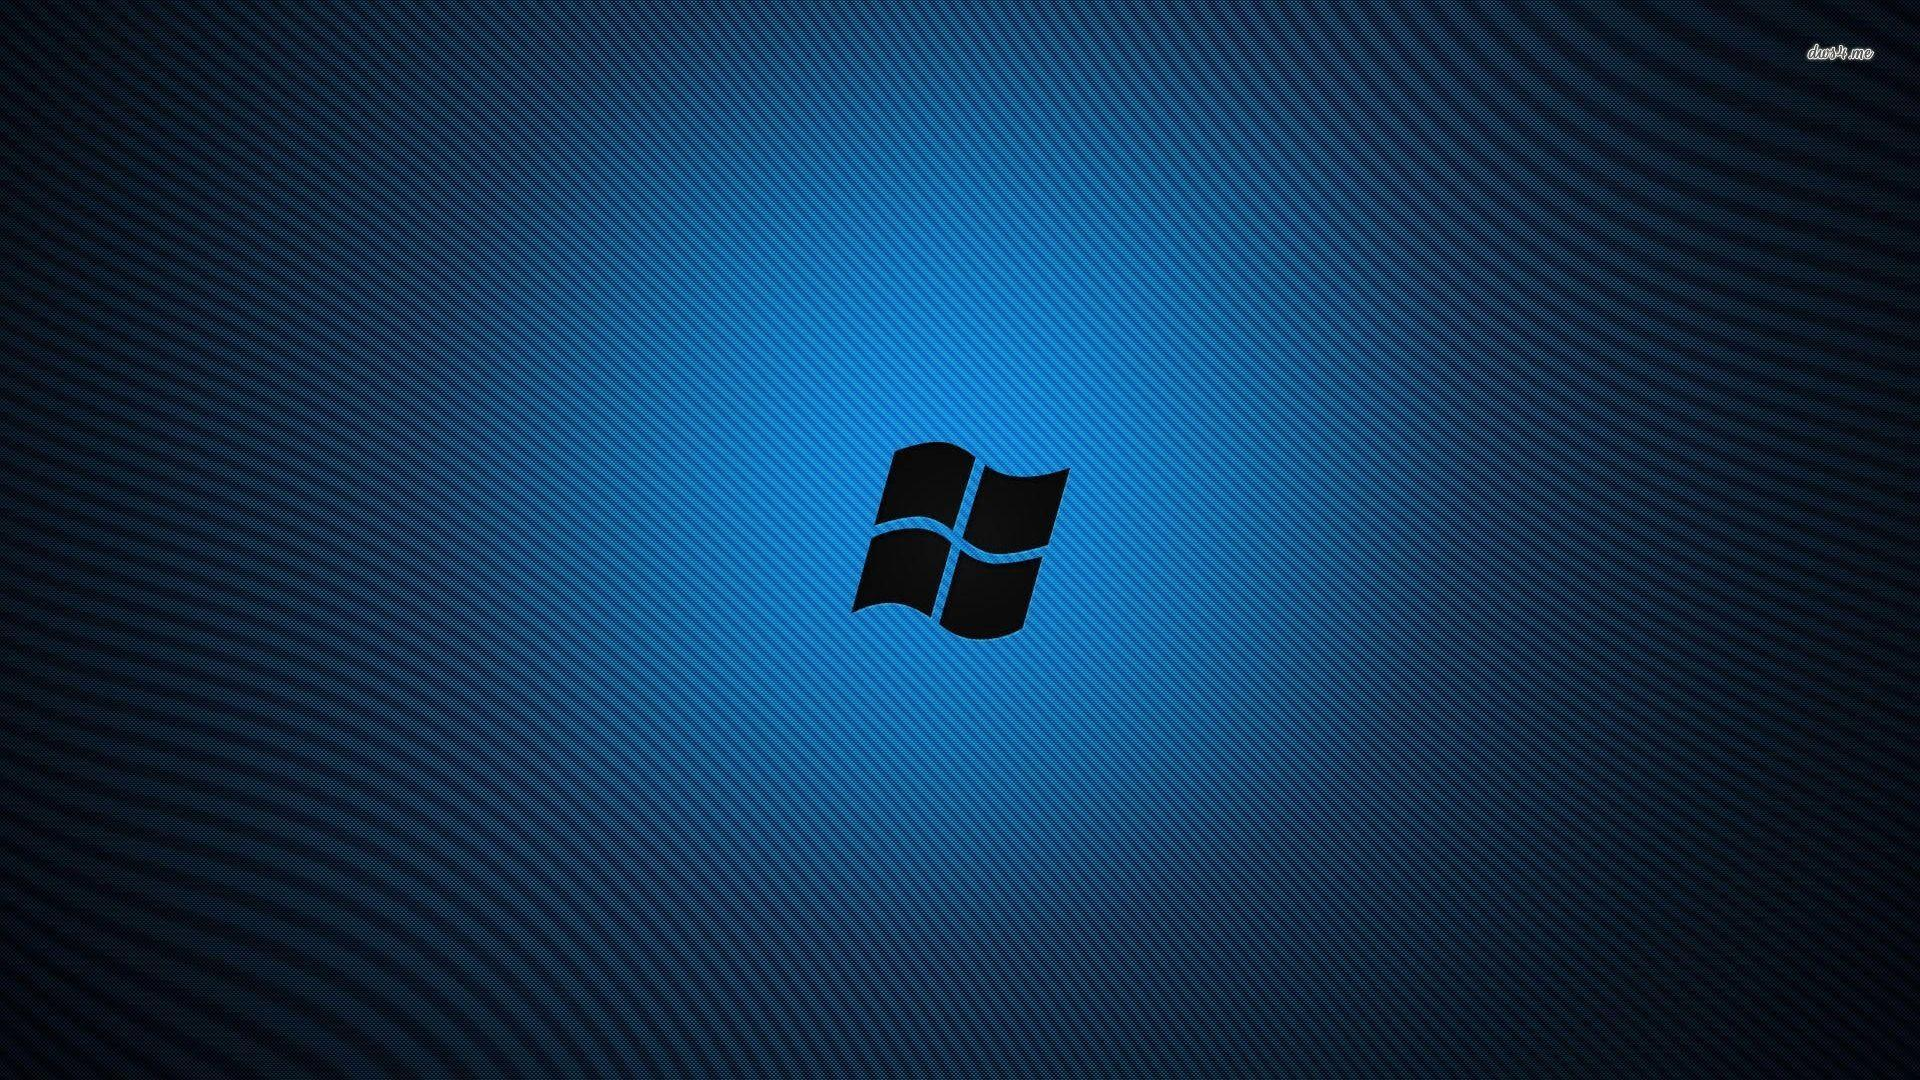 Wallpapers For > Windows Wallpapers Blue